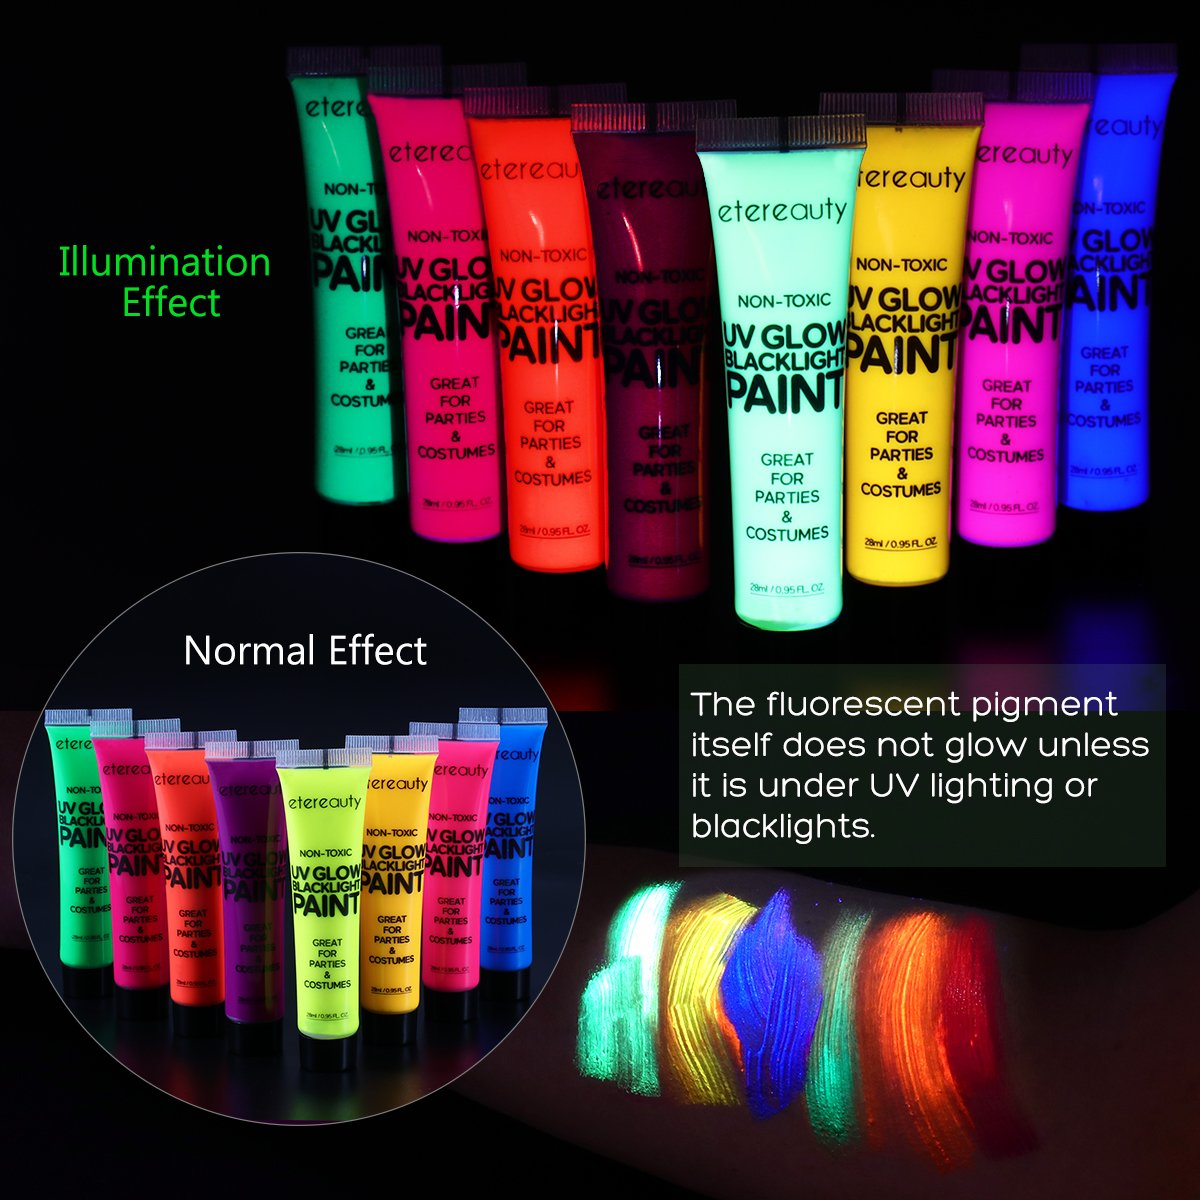 ETEREAUTY UV Glow Blacklight Face and Body Paint 1-oz, Set of 8 Tubes with 6 Brushes and a Mixing Palette by  (Image #2)